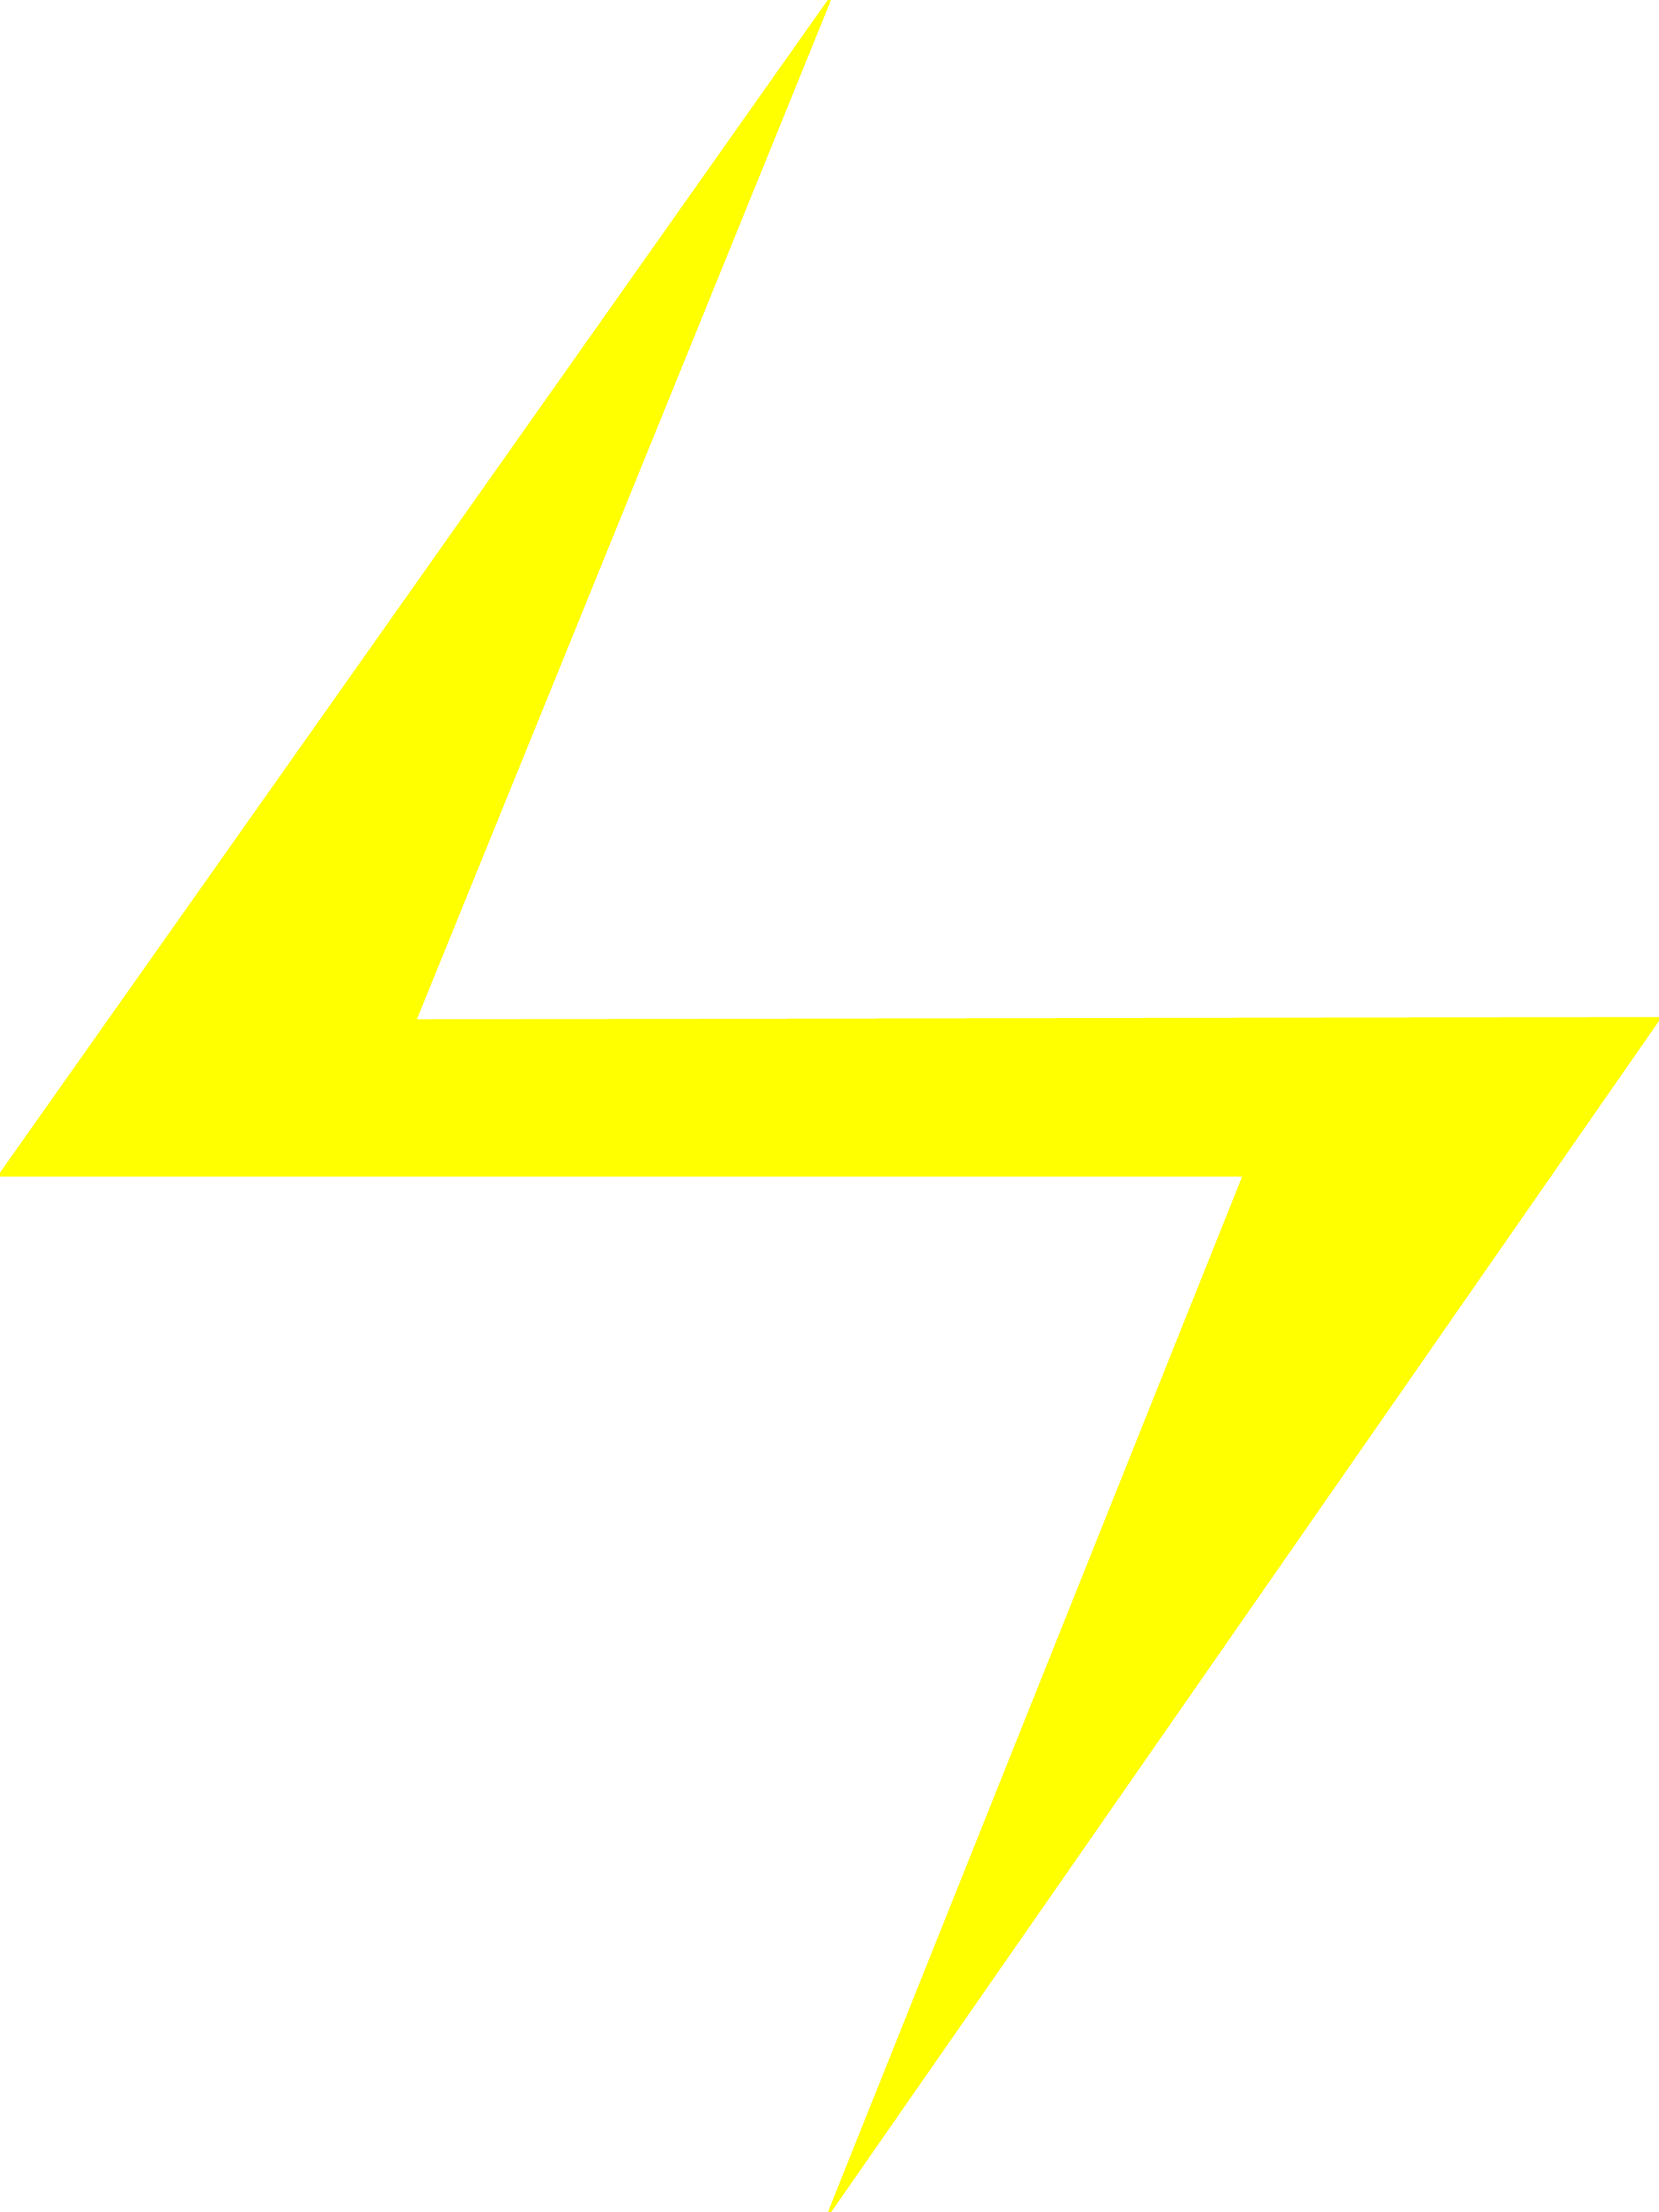 Yellow Lightning Bolt Clipart image #44050